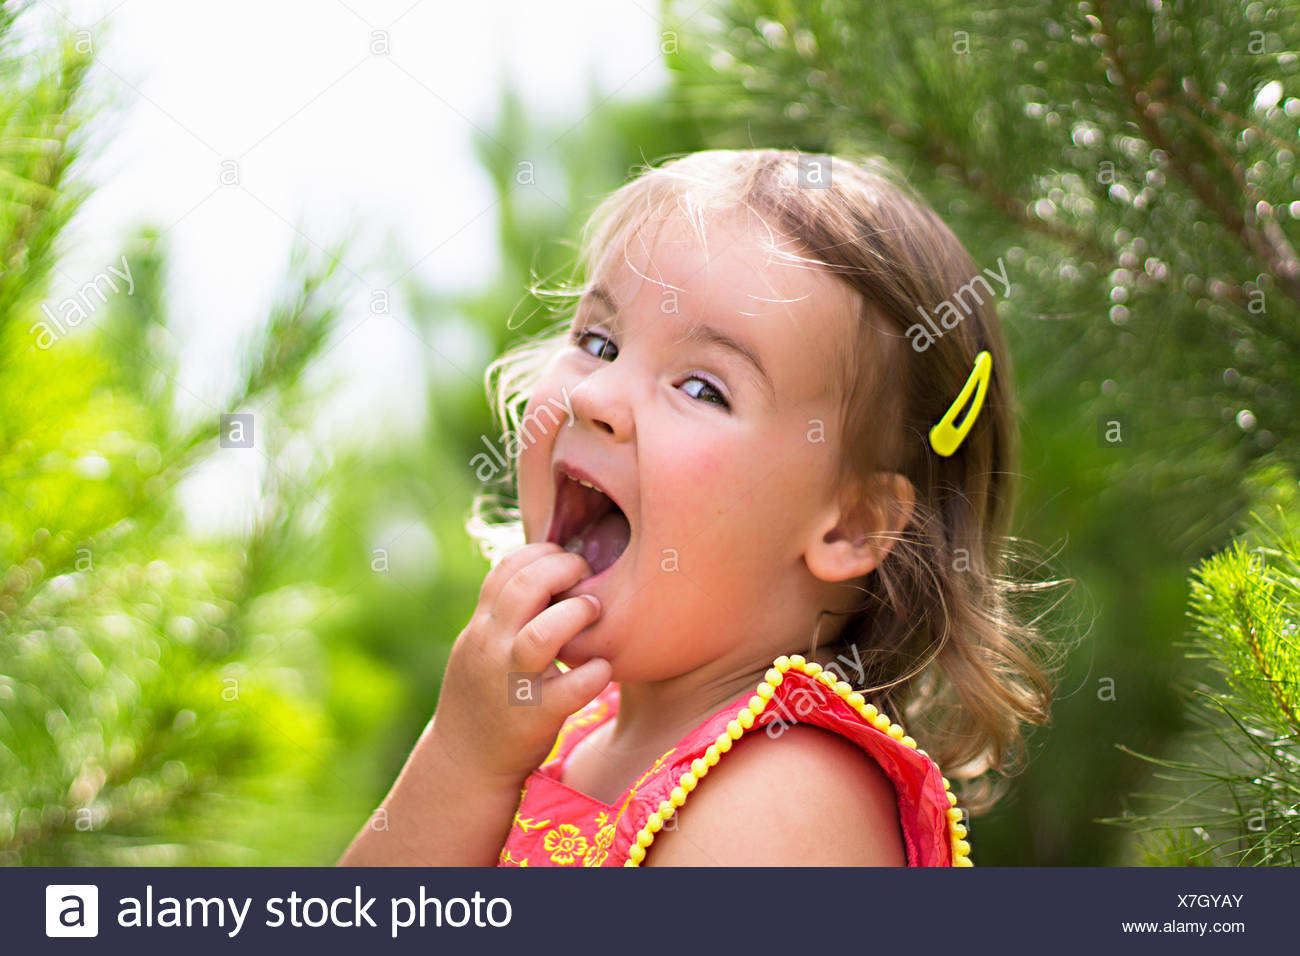 Girl with hand on face laughing - Stock Image